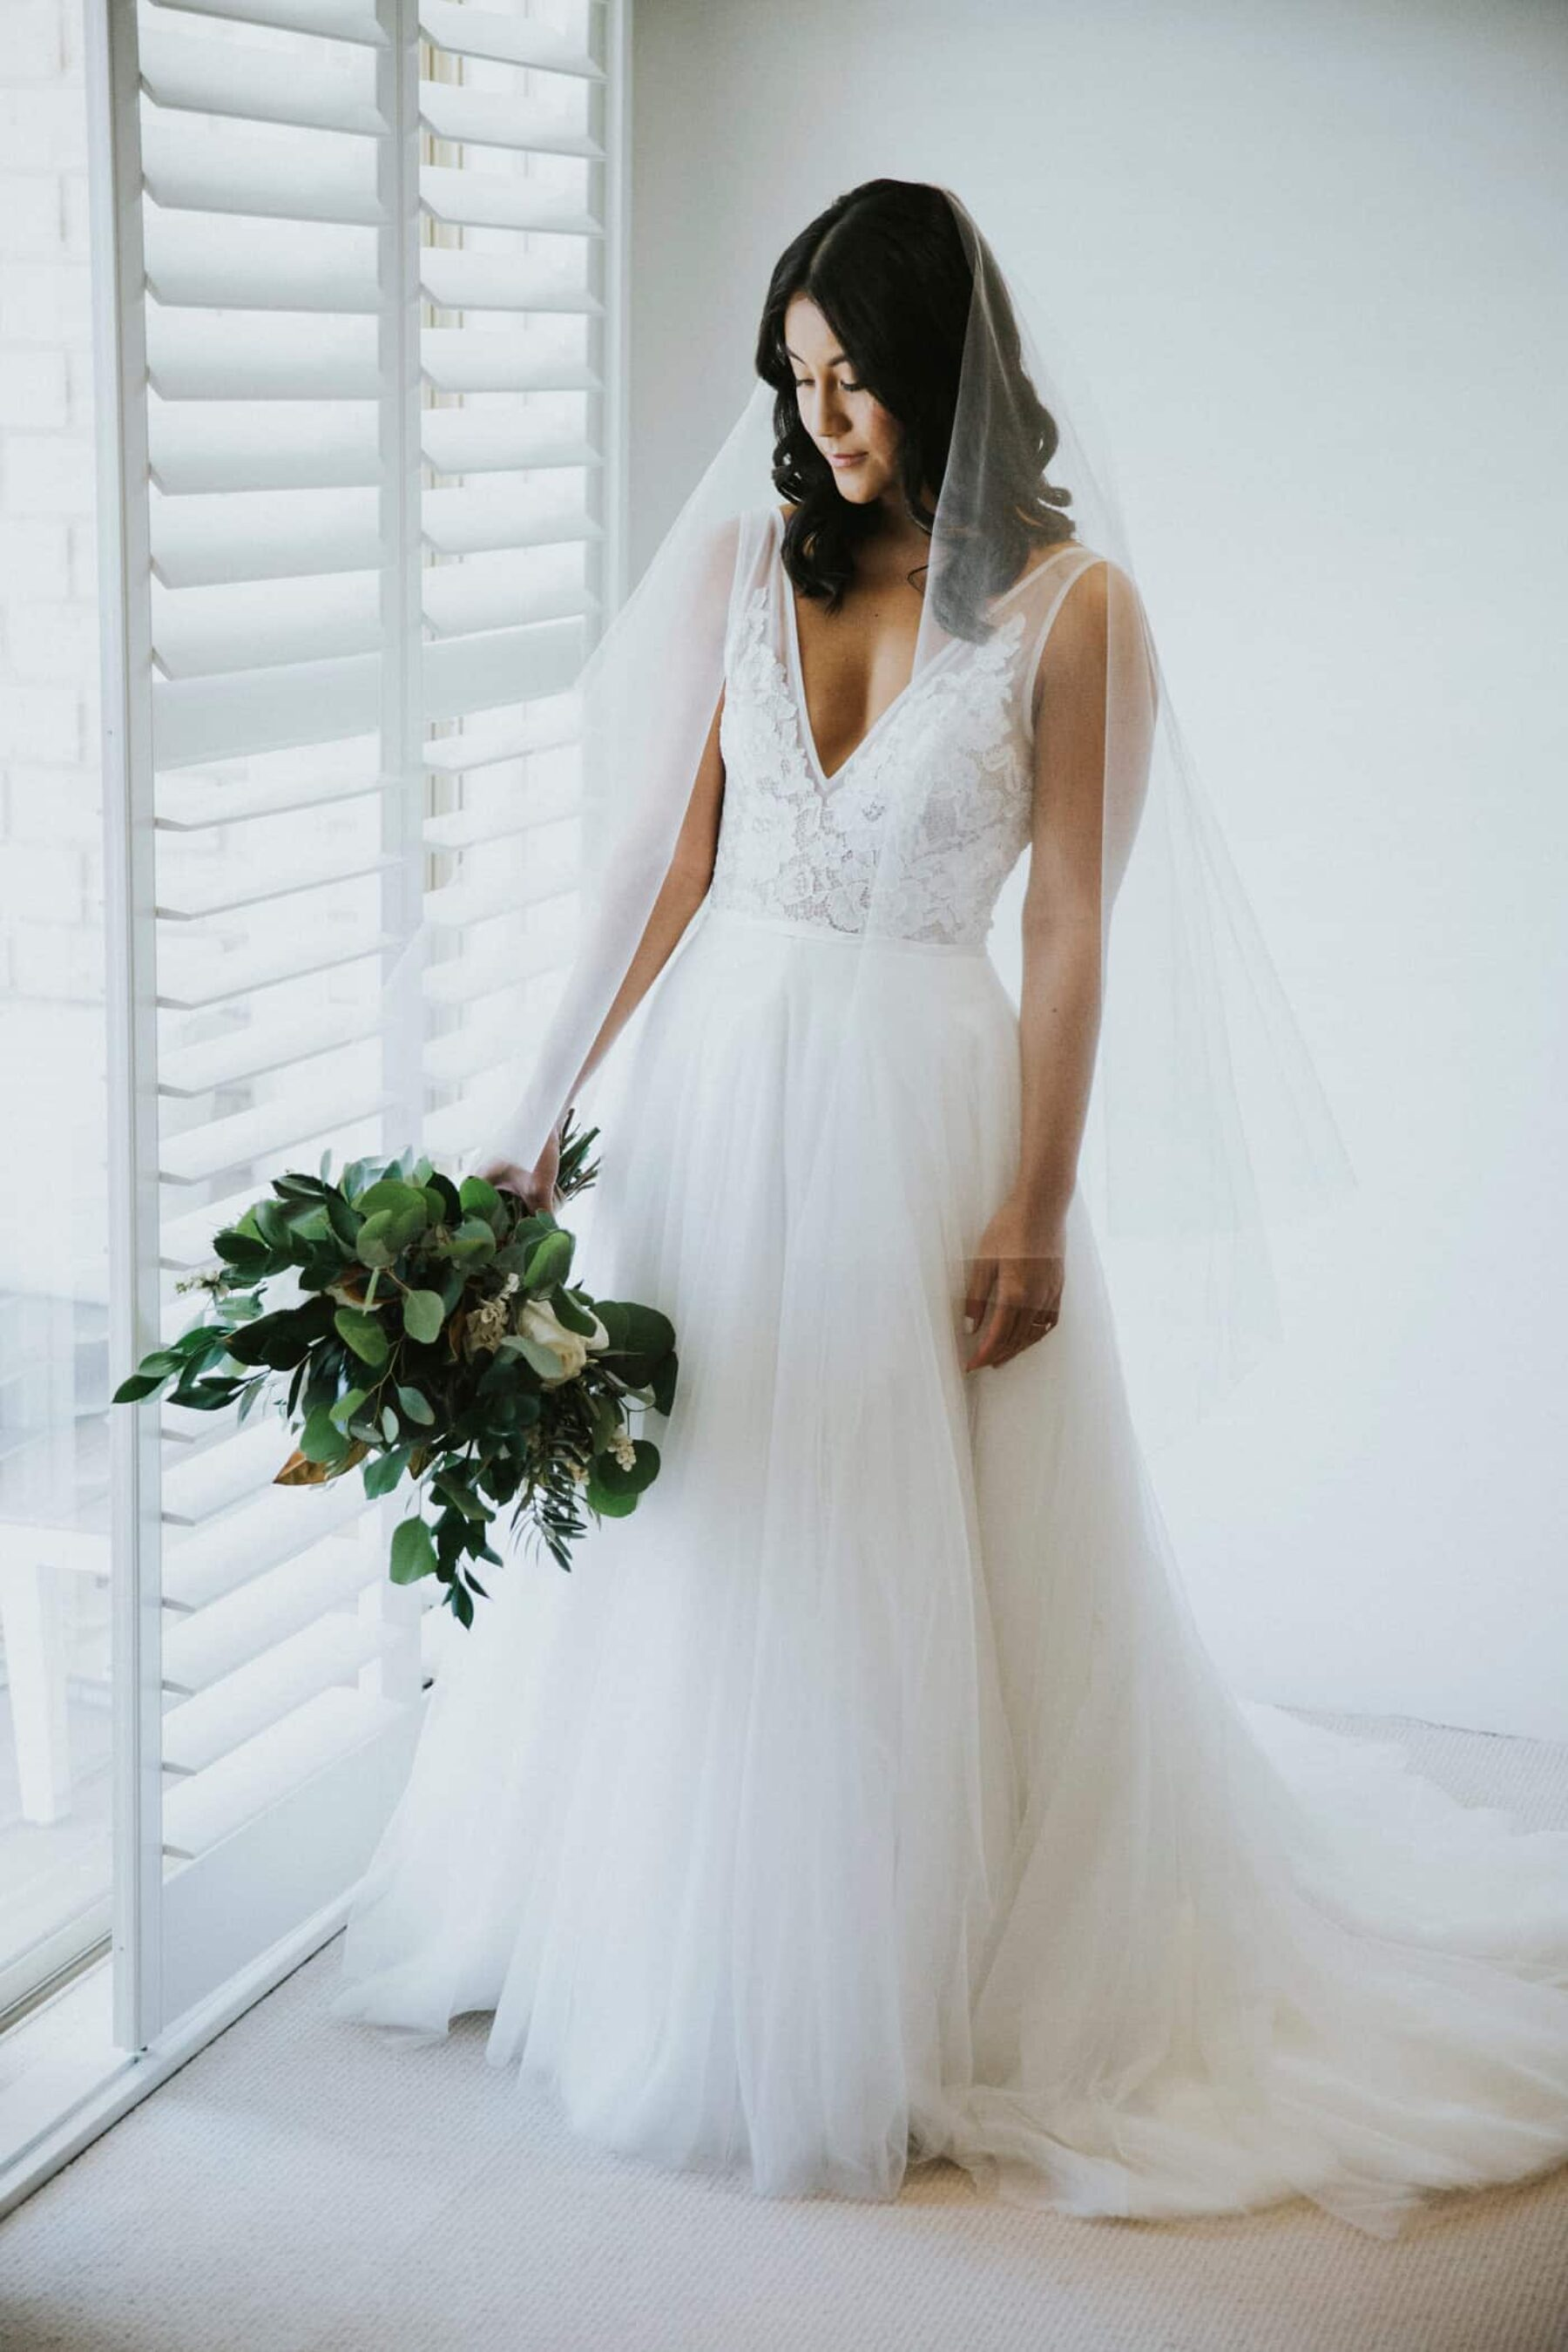 Willow wedding dress from Made with Love Bridal